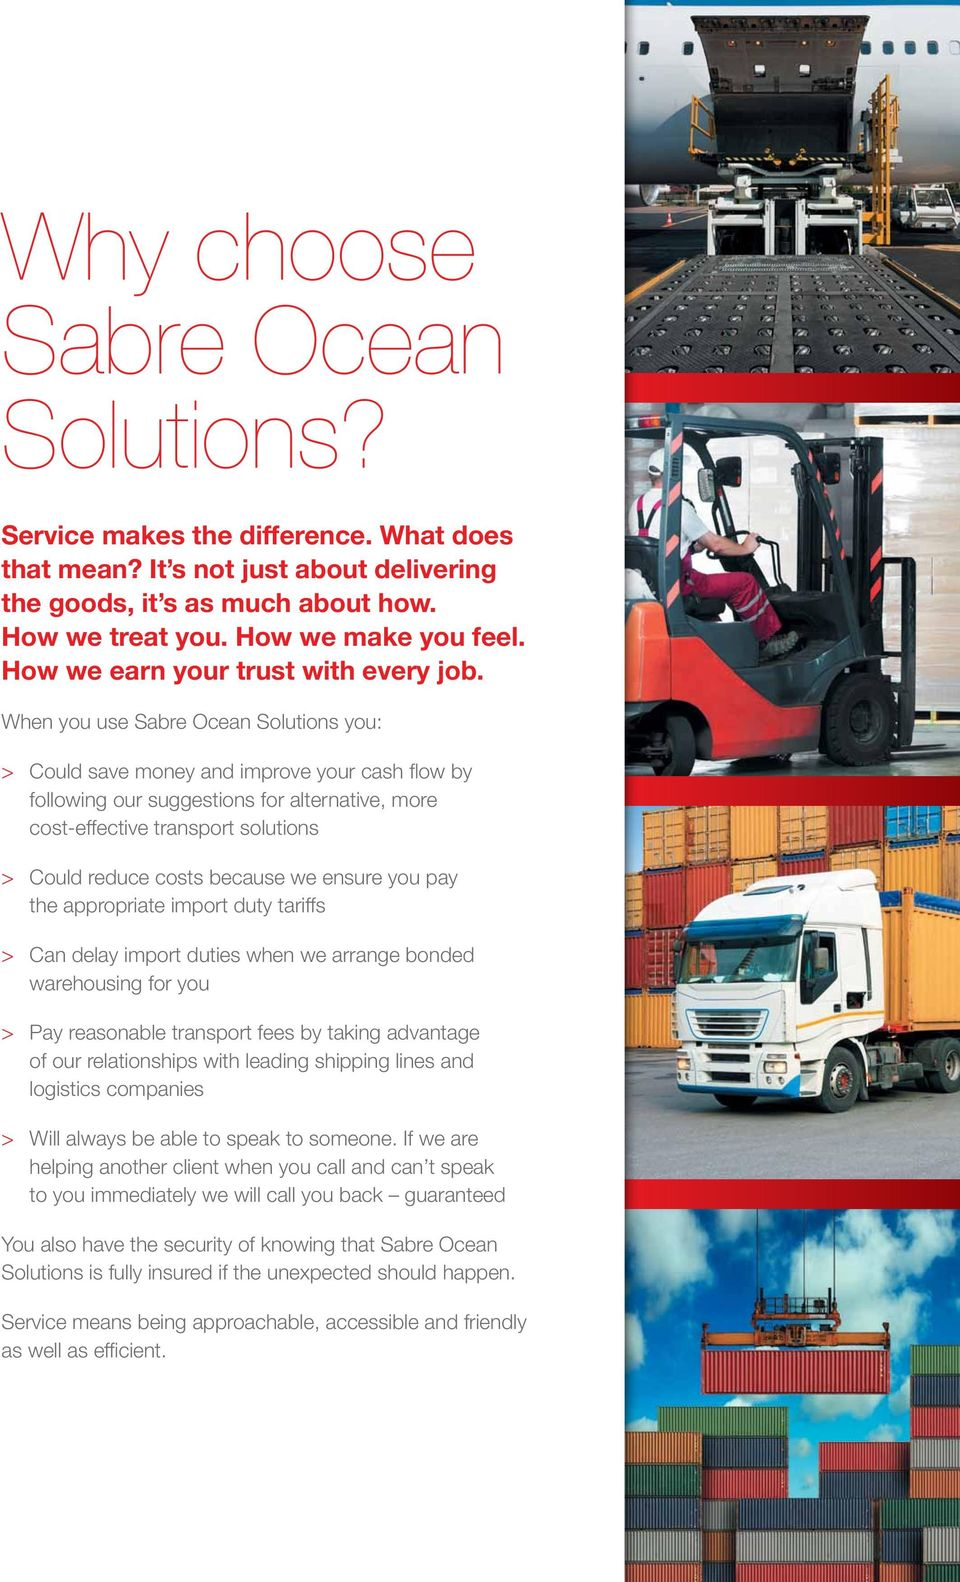 When you use Sabre Ocean Solutions you: > Could save money and improve your cash flow by following our suggestions for alternative, more cost-effective transport solutions > Could reduce costs